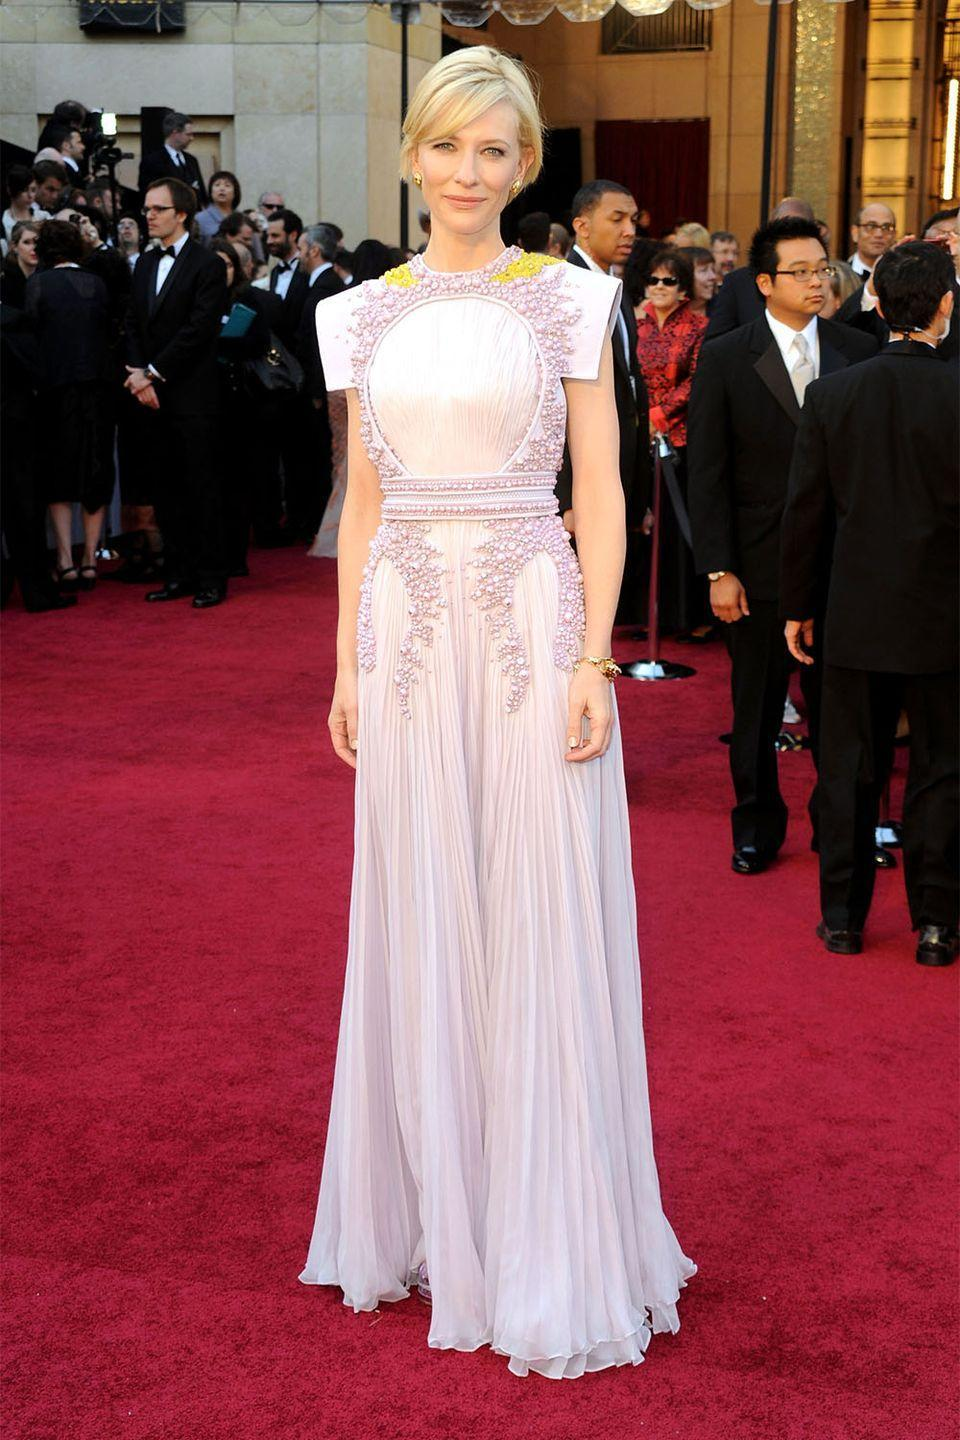 <p>Cate Blanchett is always one to take a risk on the red carpet, and she won the hearts of the fashion set in this Givenchy Haute Couture confection.</p>